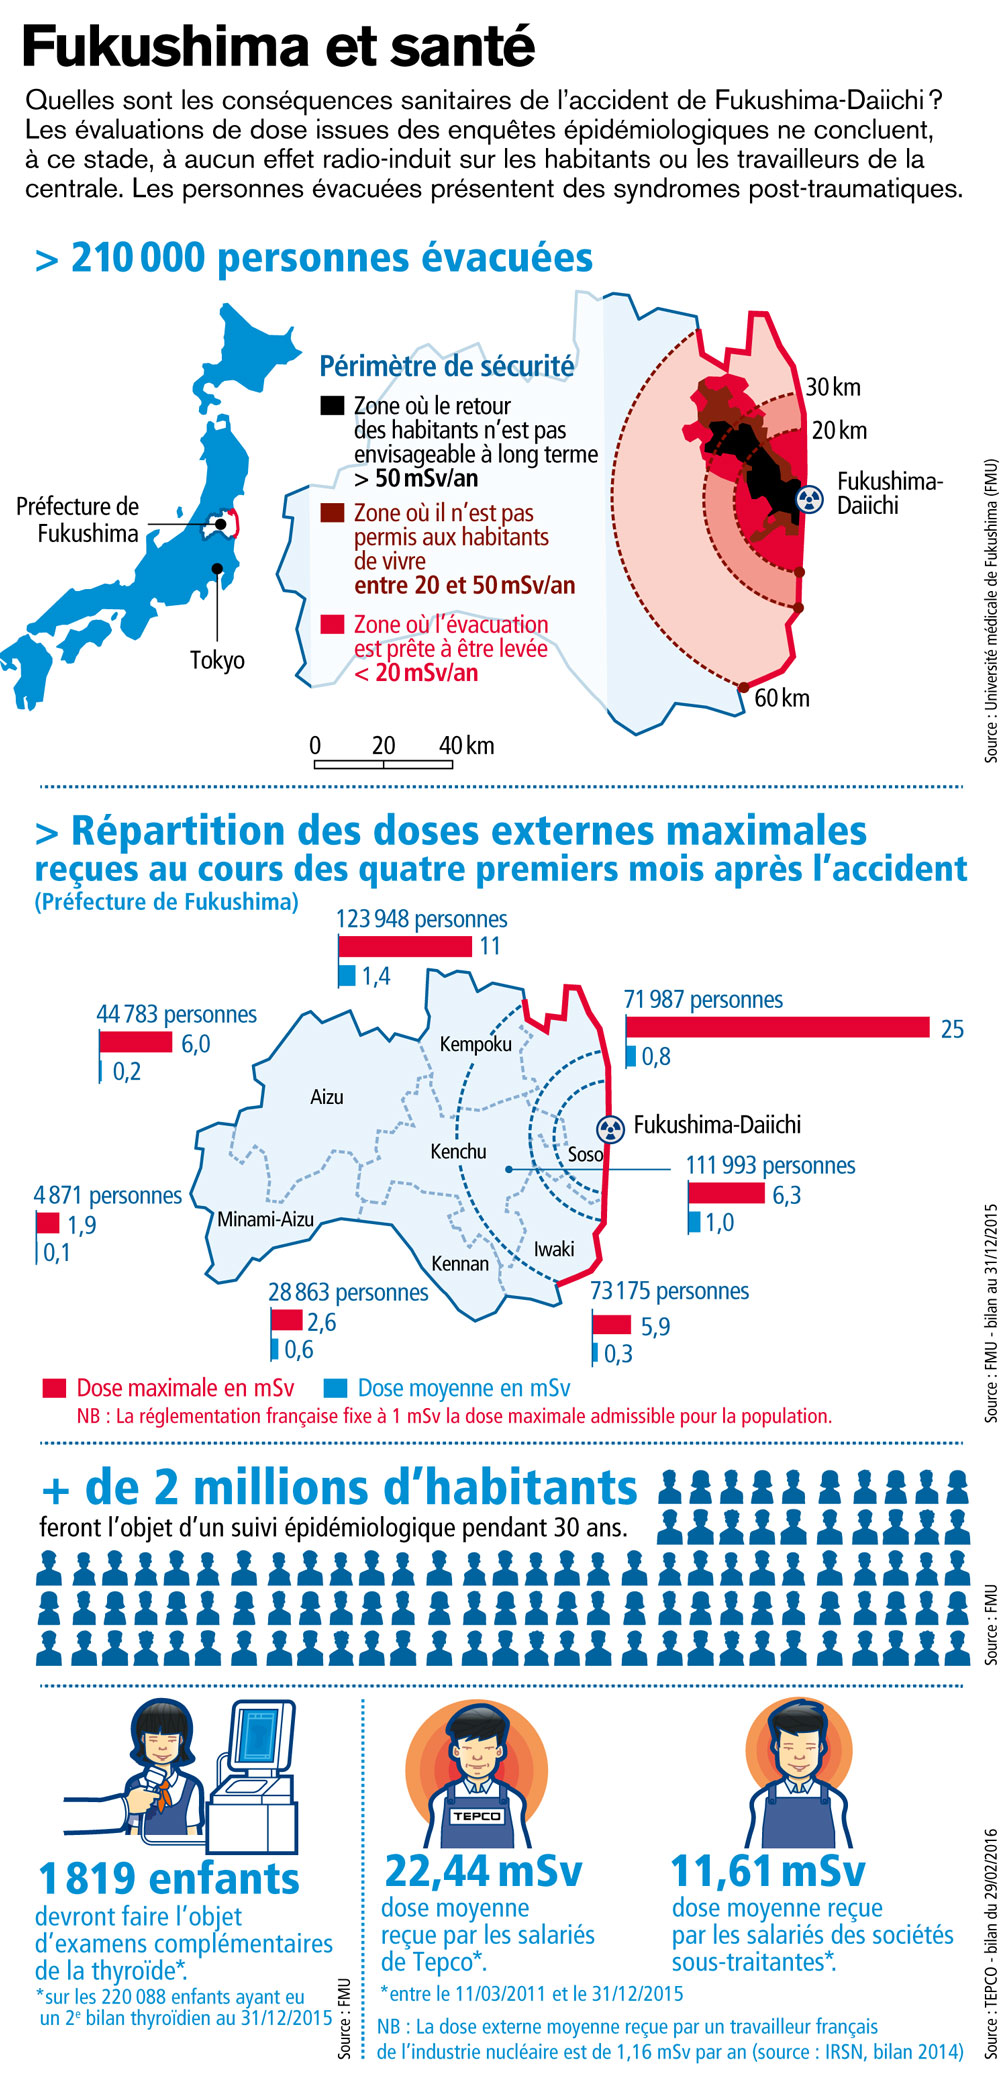 http://www.irsn.fr/FR/connaissances/Installations_nucleaires/Les-accidents-nucleaires/accident-fukushima-2011/fukushima-2016/PublishingImages/IRSN_Infographie-Fukushima-Sante_201607.jpg